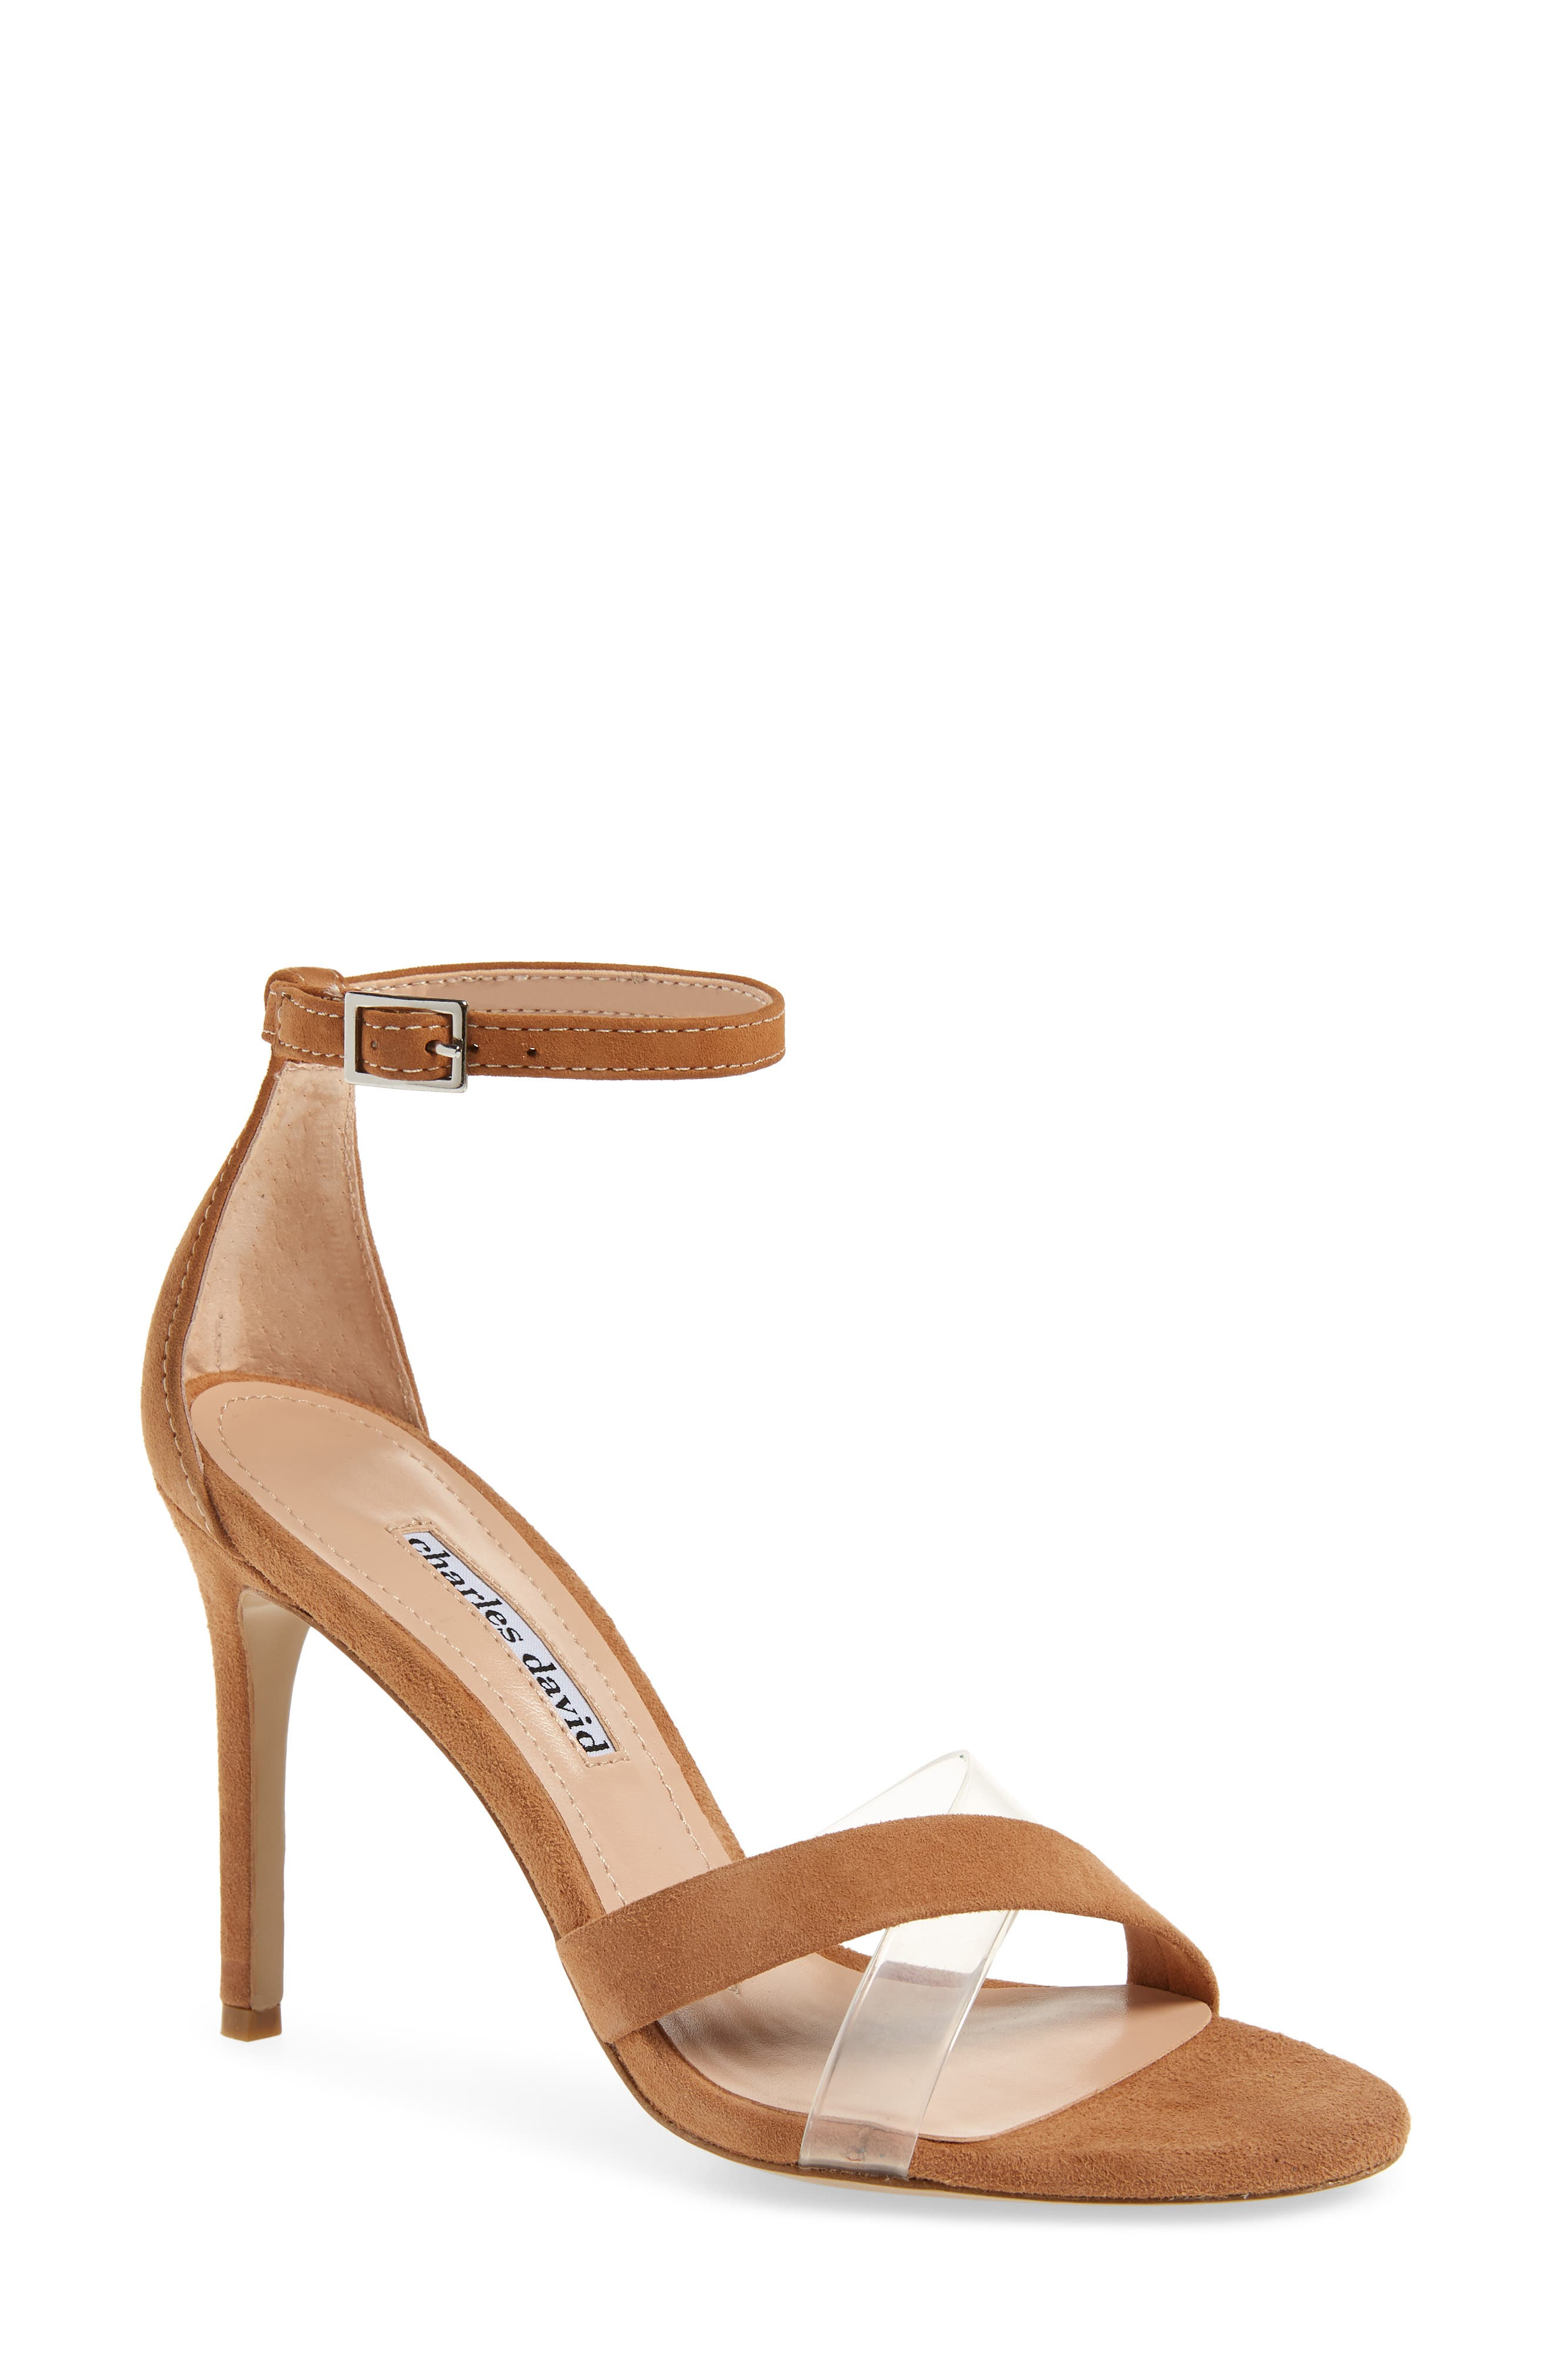 Charles David Courtney Sandal, Beige